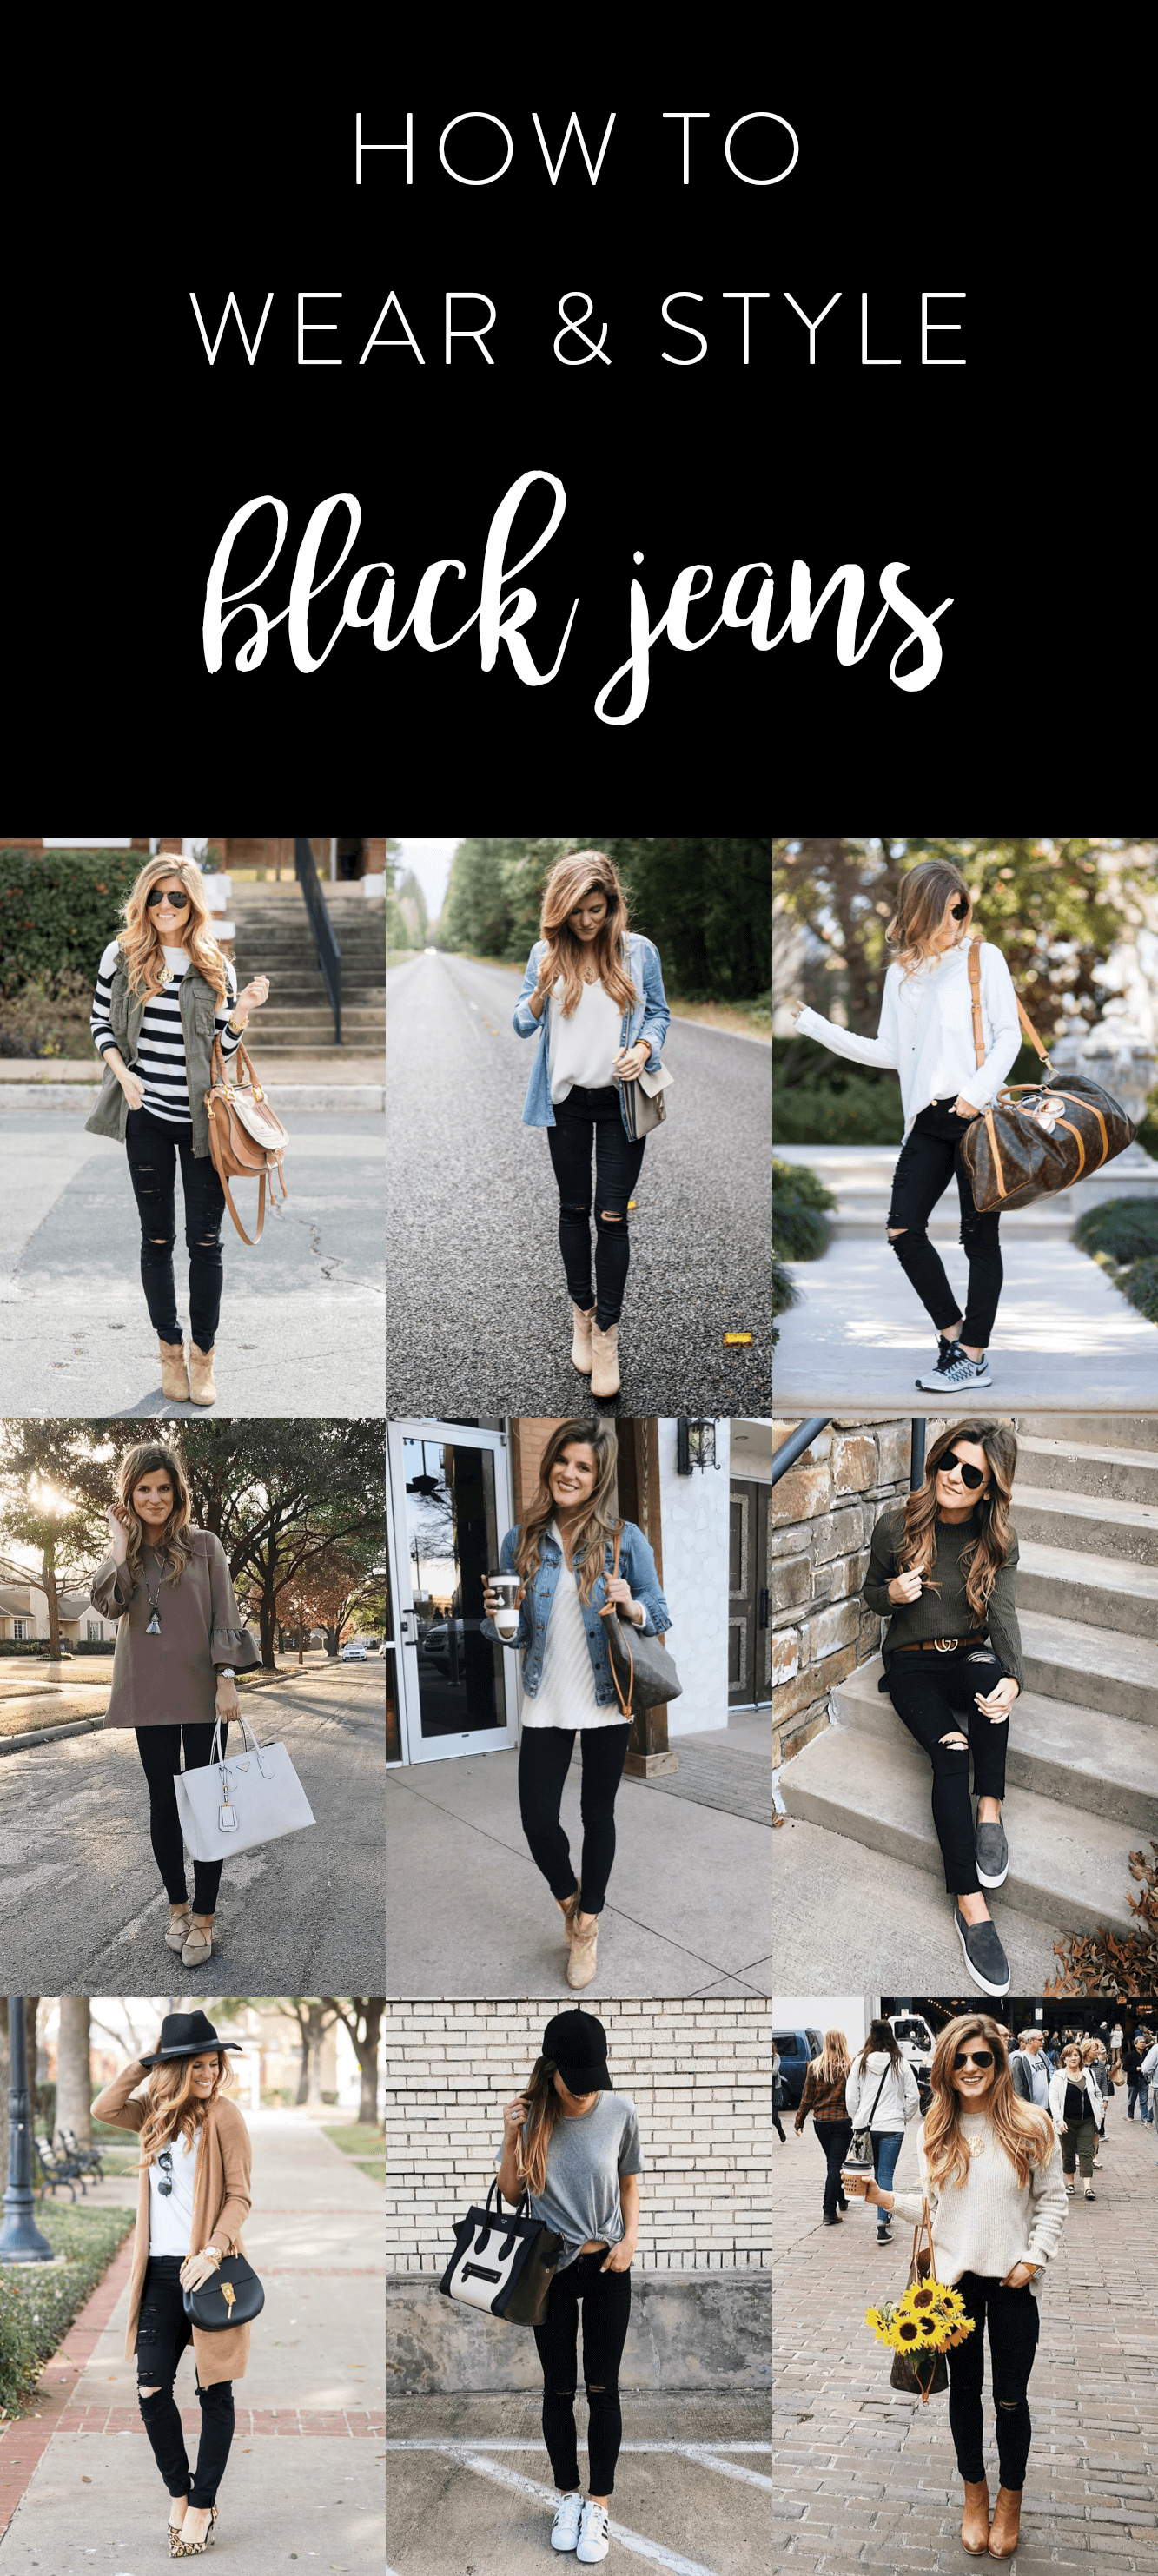 493b8d546 what to wear with black jeans, how to wear black jeans, black jeans outfit